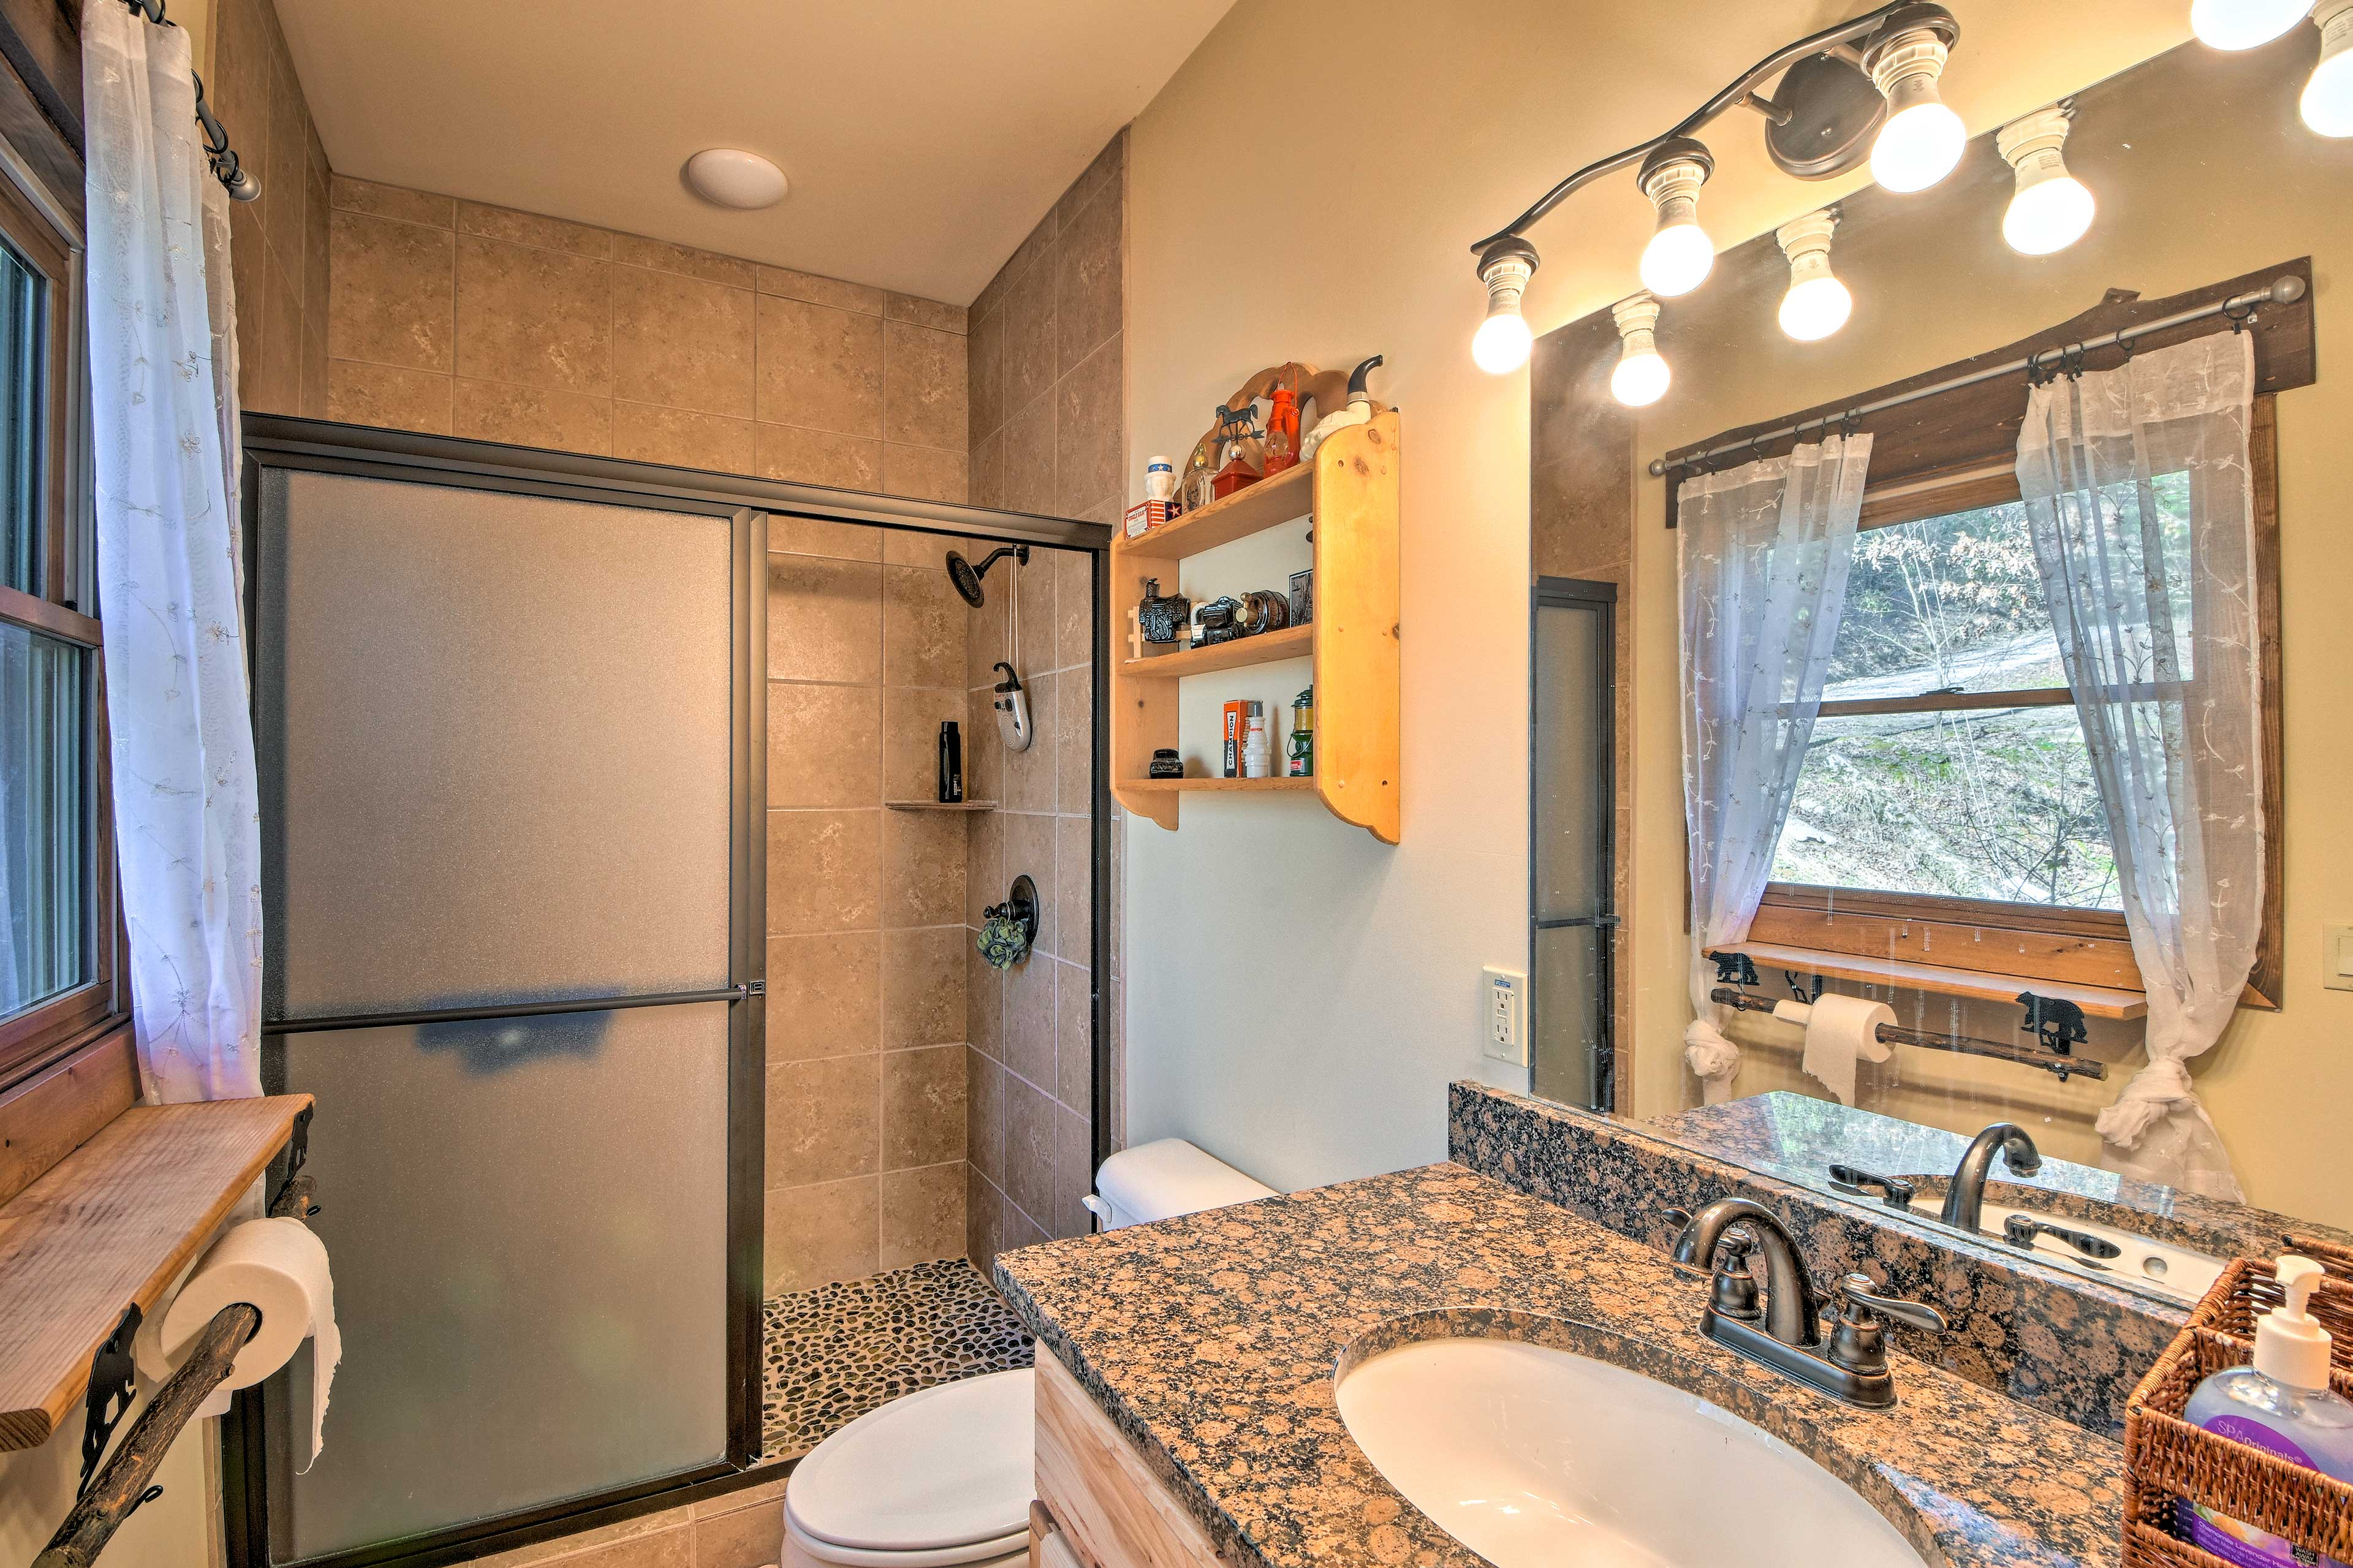 Rinse off the river in this step-in shower.